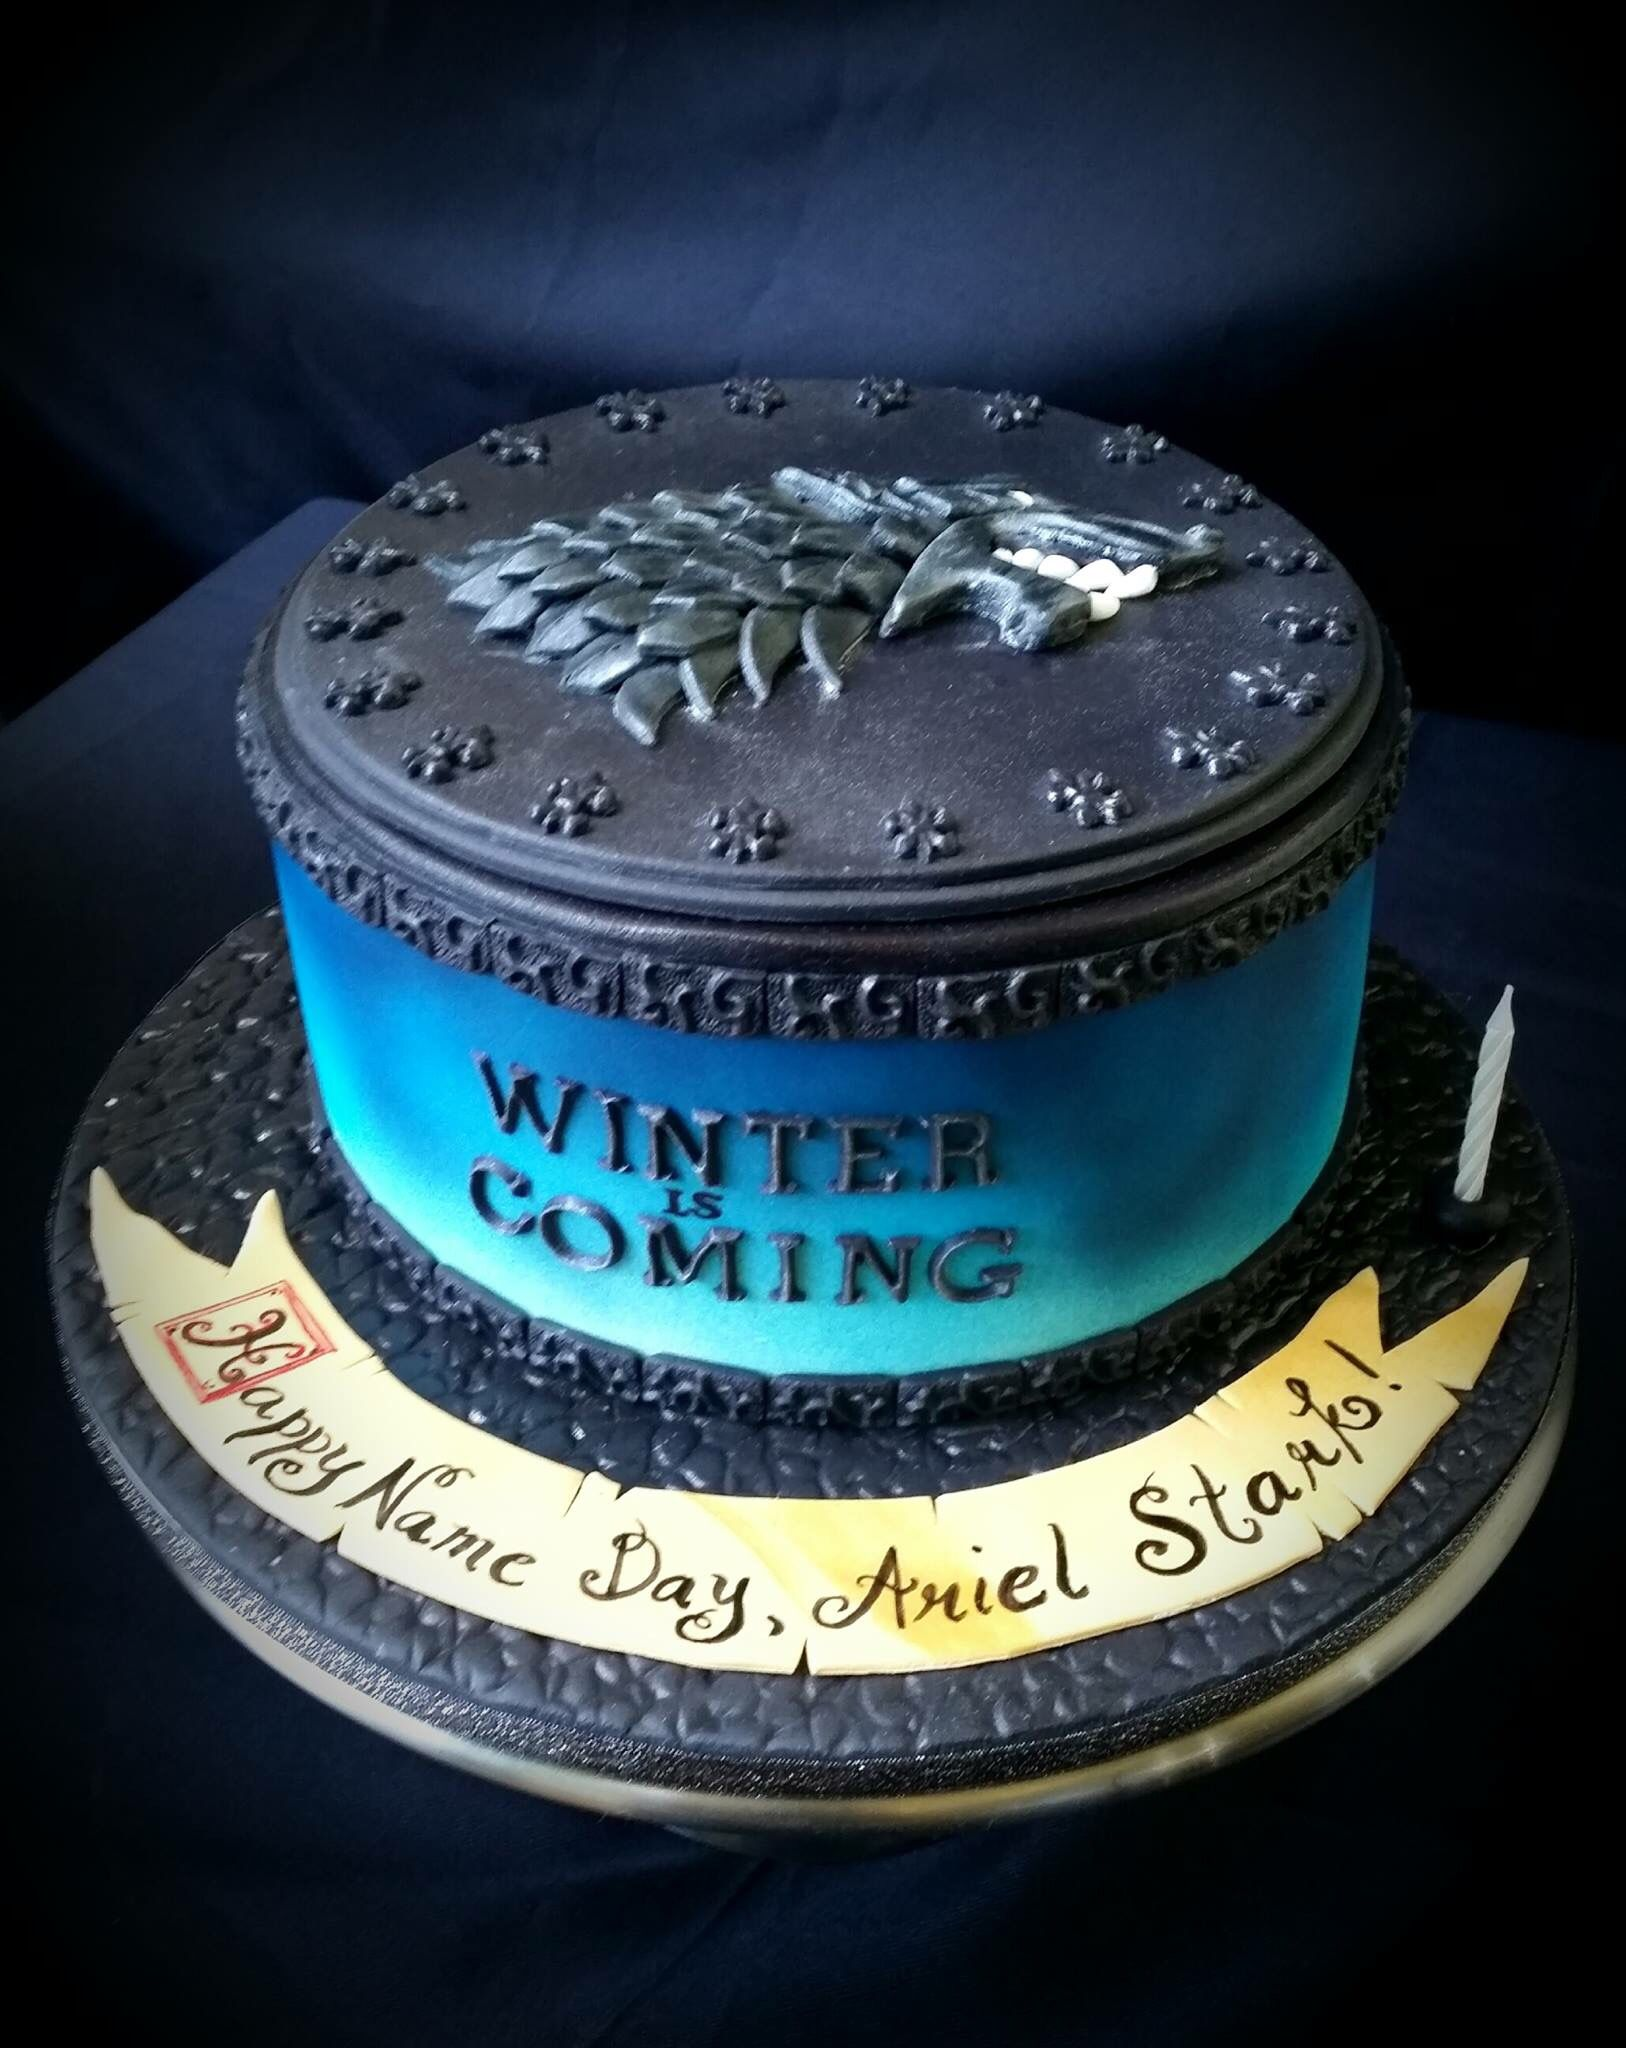 Birthday Cake For My Hubby 2016 Got House Of Stark By Frank Carol S Cakes Game Of Thrones Cake Game Of Thrones Birthday Cake Game Of Thrones Birthday